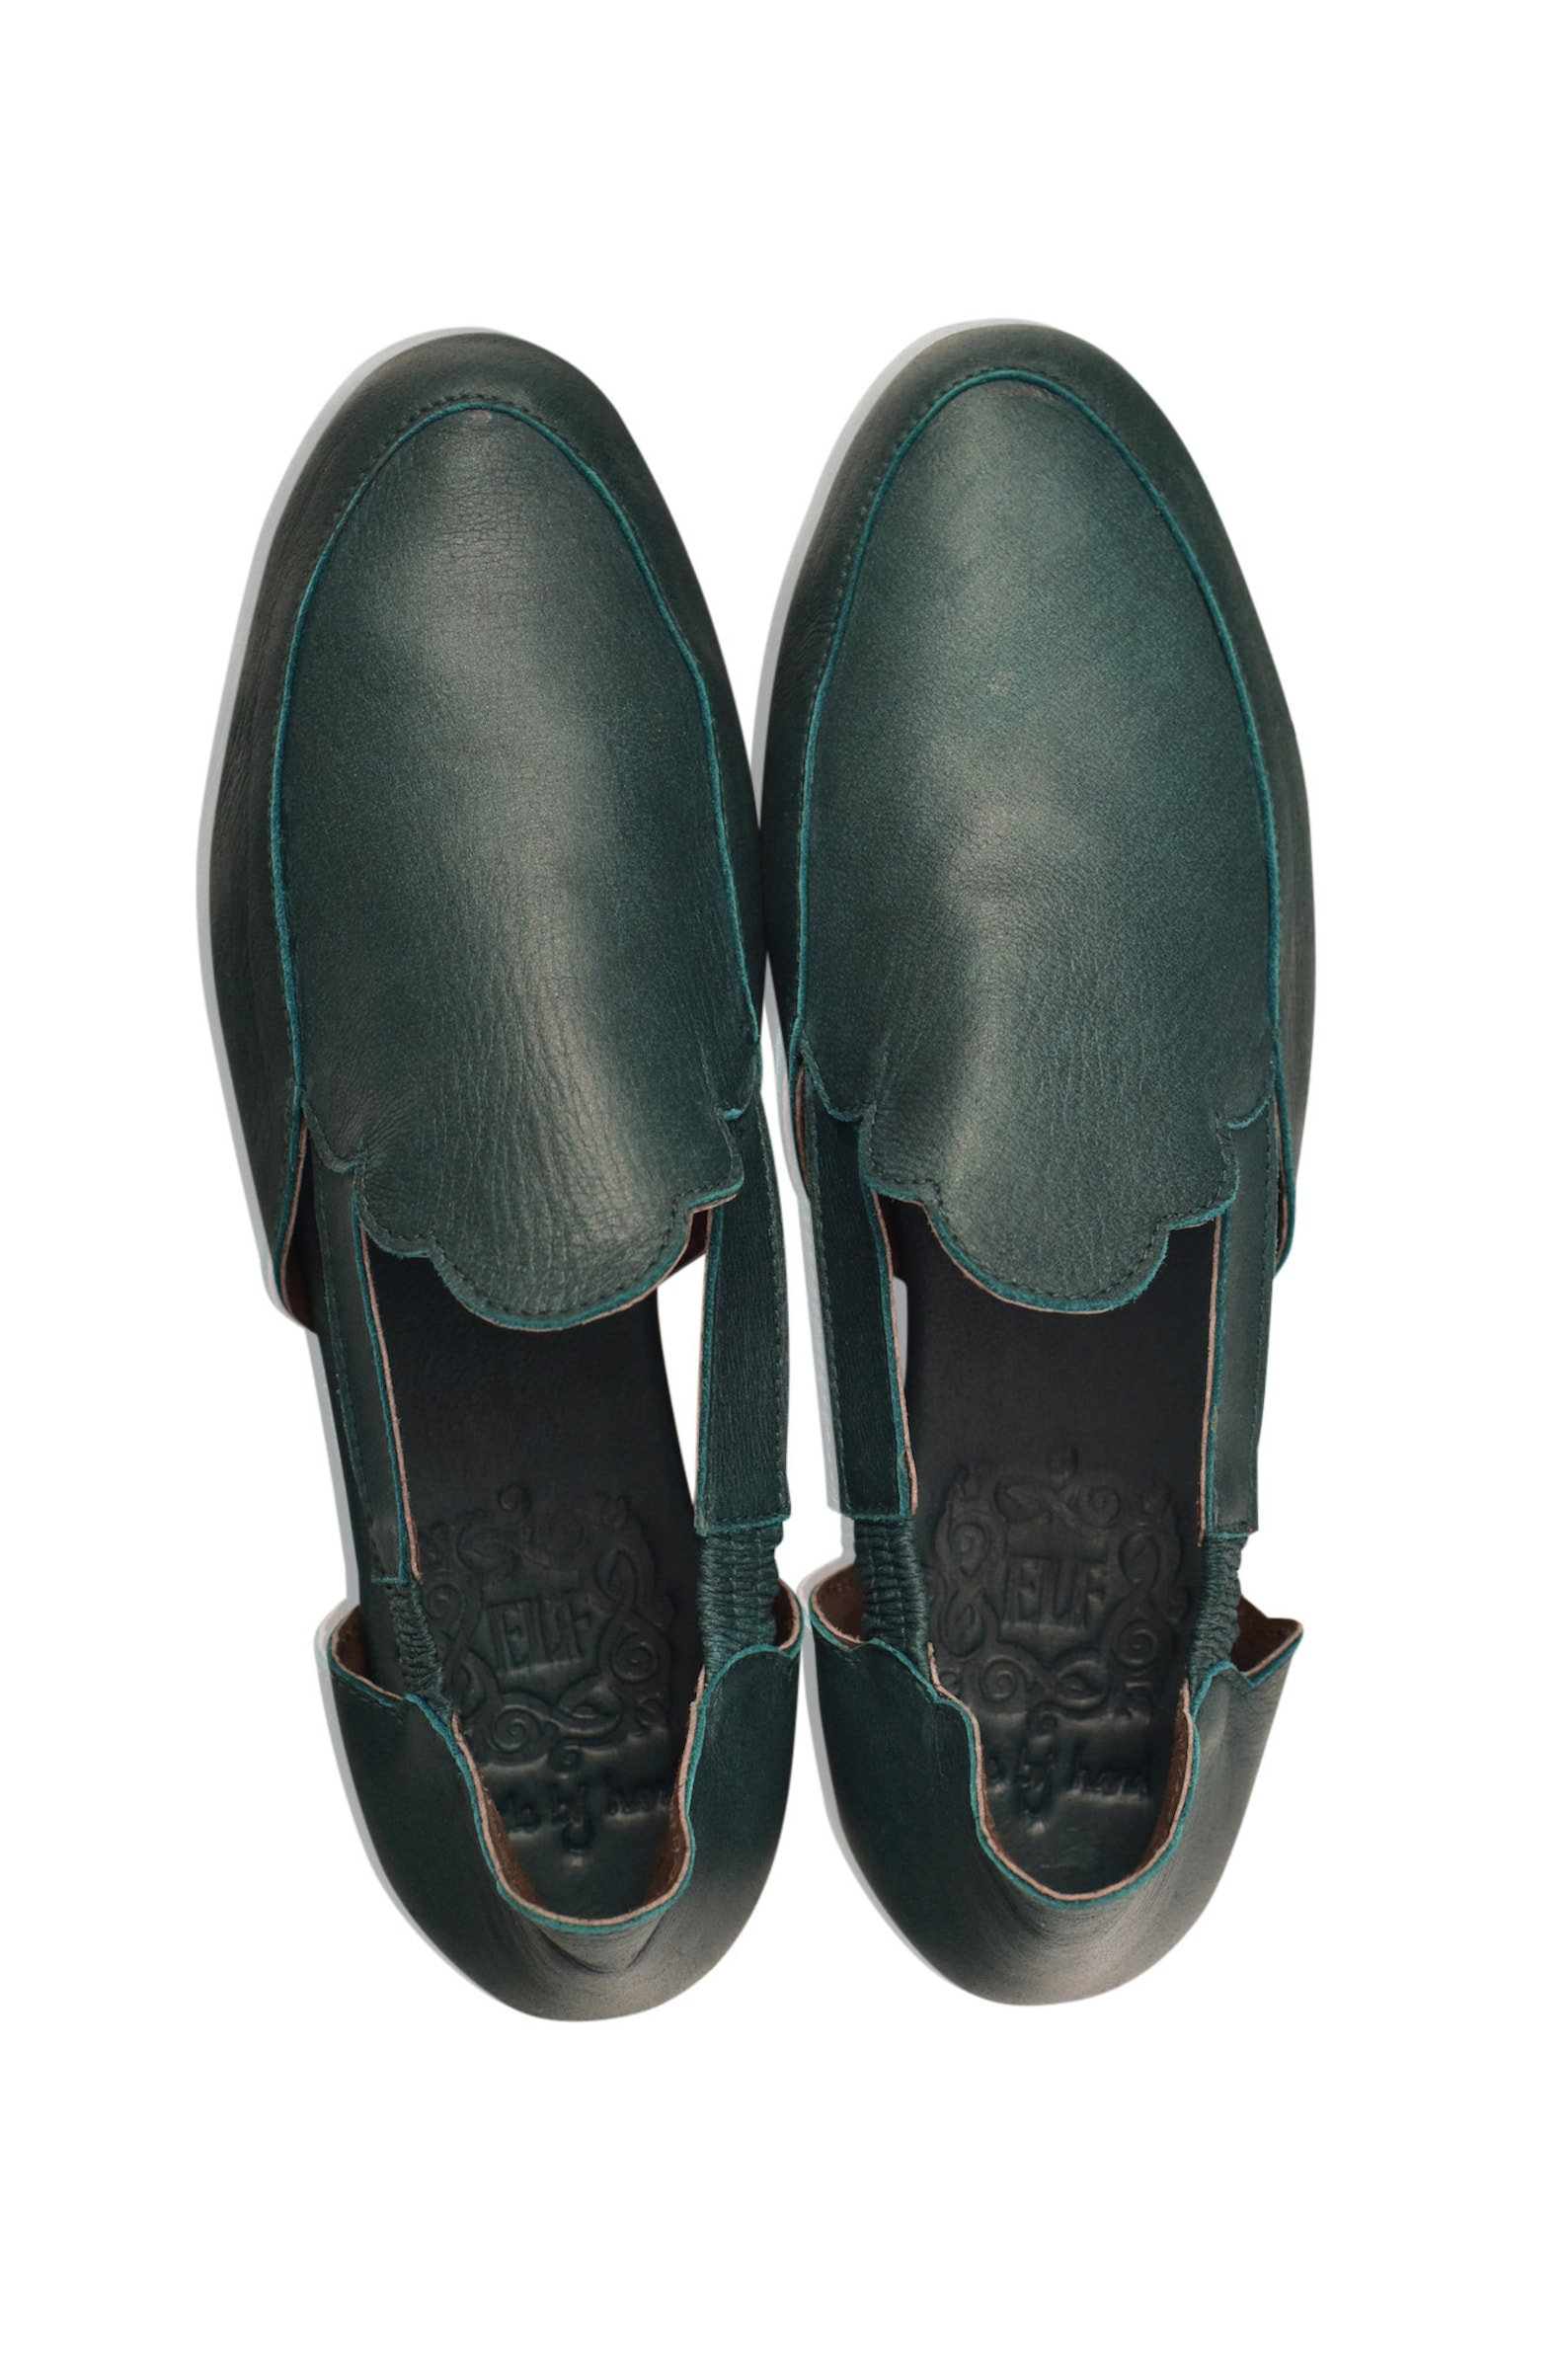 amalfi. green leather flats / leather ballet flats / leather shoes handmade / boho leather sandals. sizes 35-43 available in oth